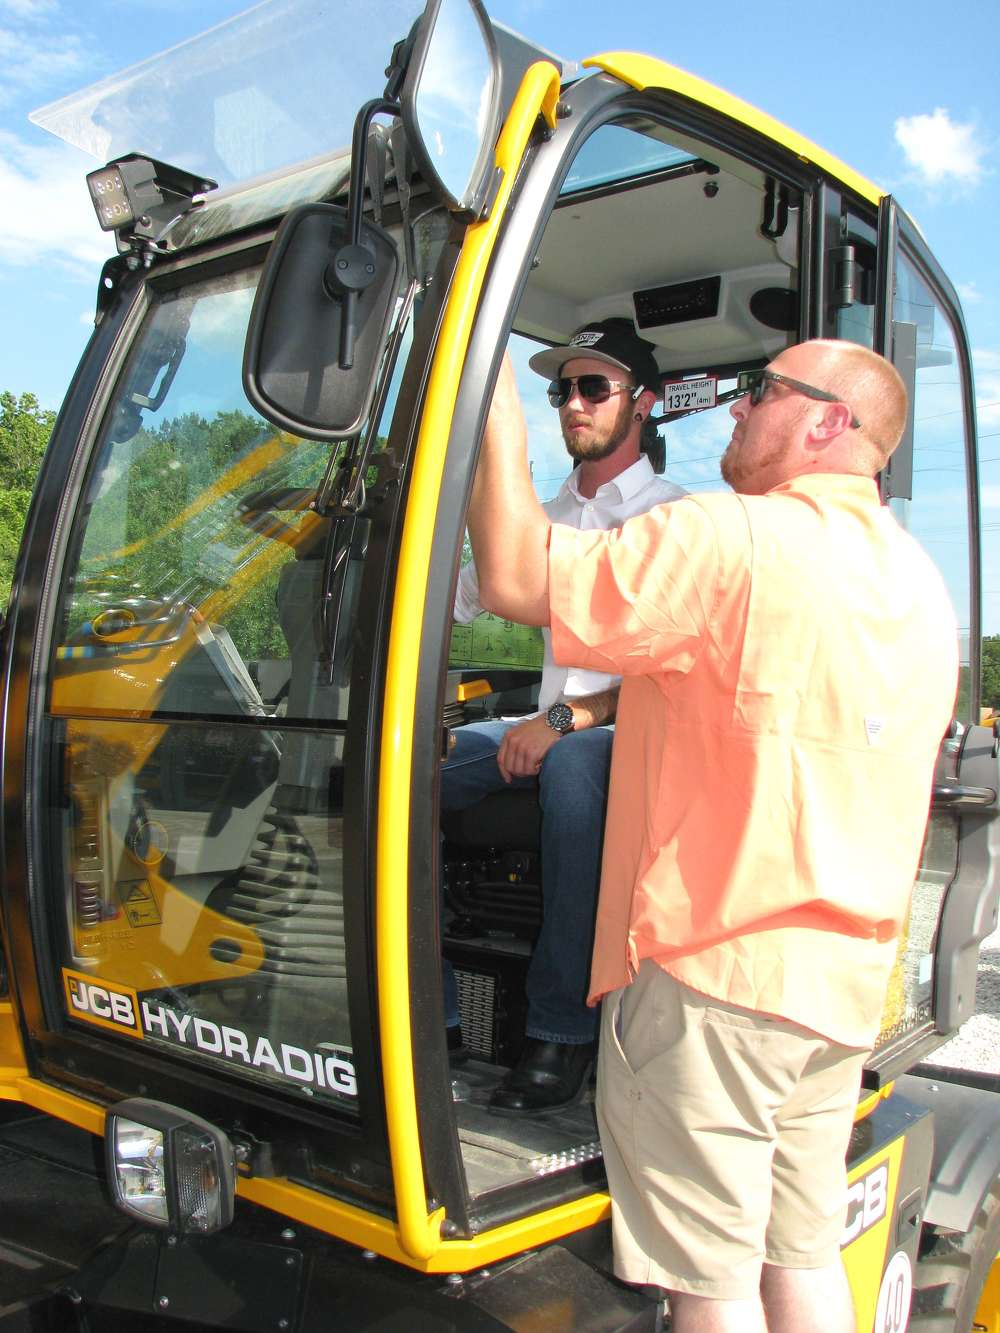 Jeffrey Treynor (L) of Ocean Woods Landscaping, Hilton Head Island, S.C., and Jarred Mayse of CSA in Sea Pines, Hilton Head Island, S.C., check out the cab of the new JCB Hydradig 110w wheeled excavator.